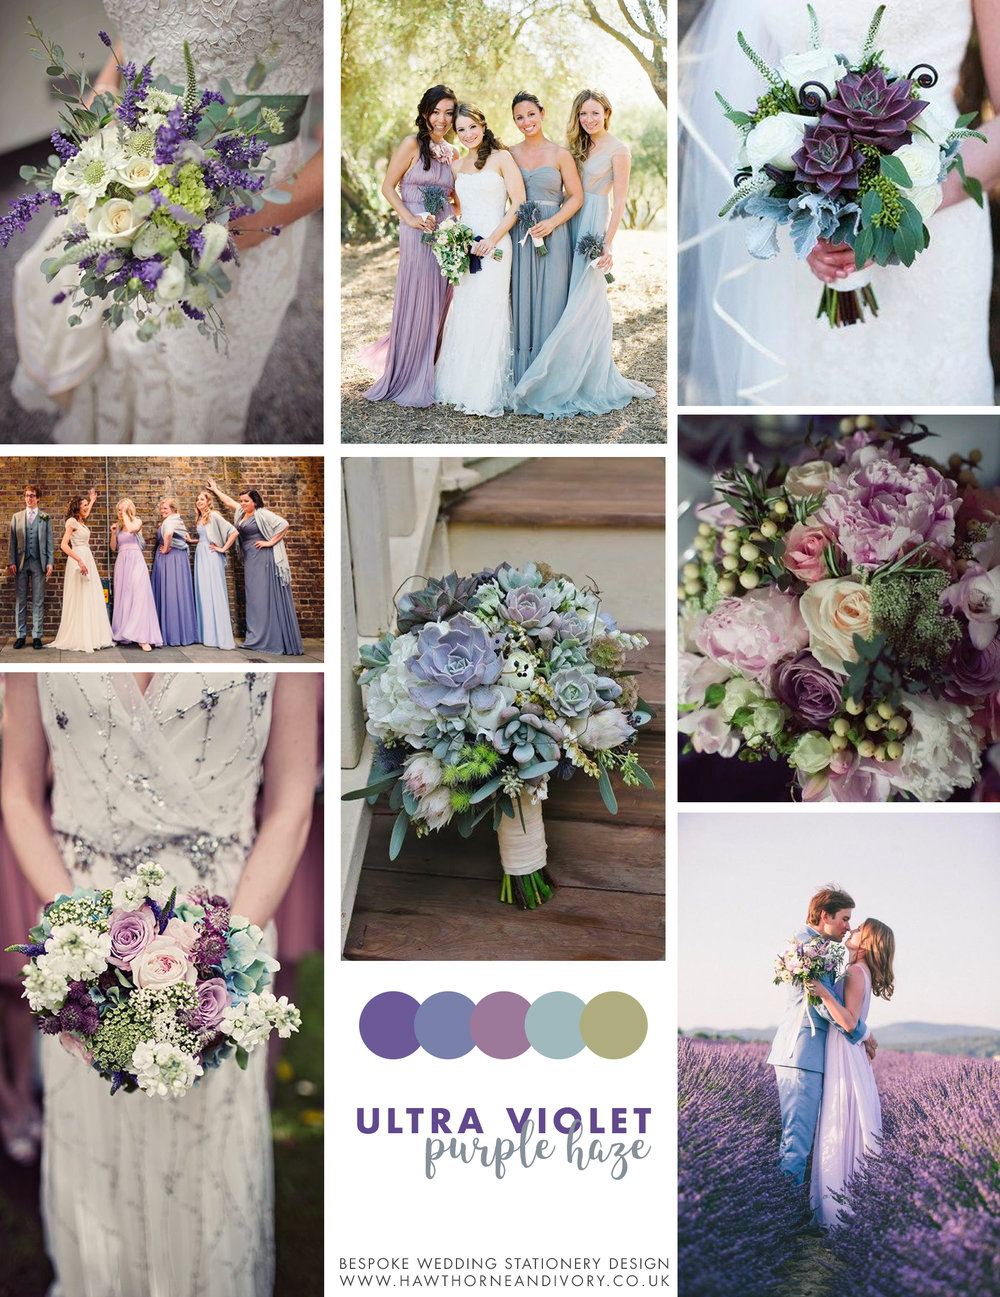 ultra violet pantone purple haze wedding colour palette.jpg